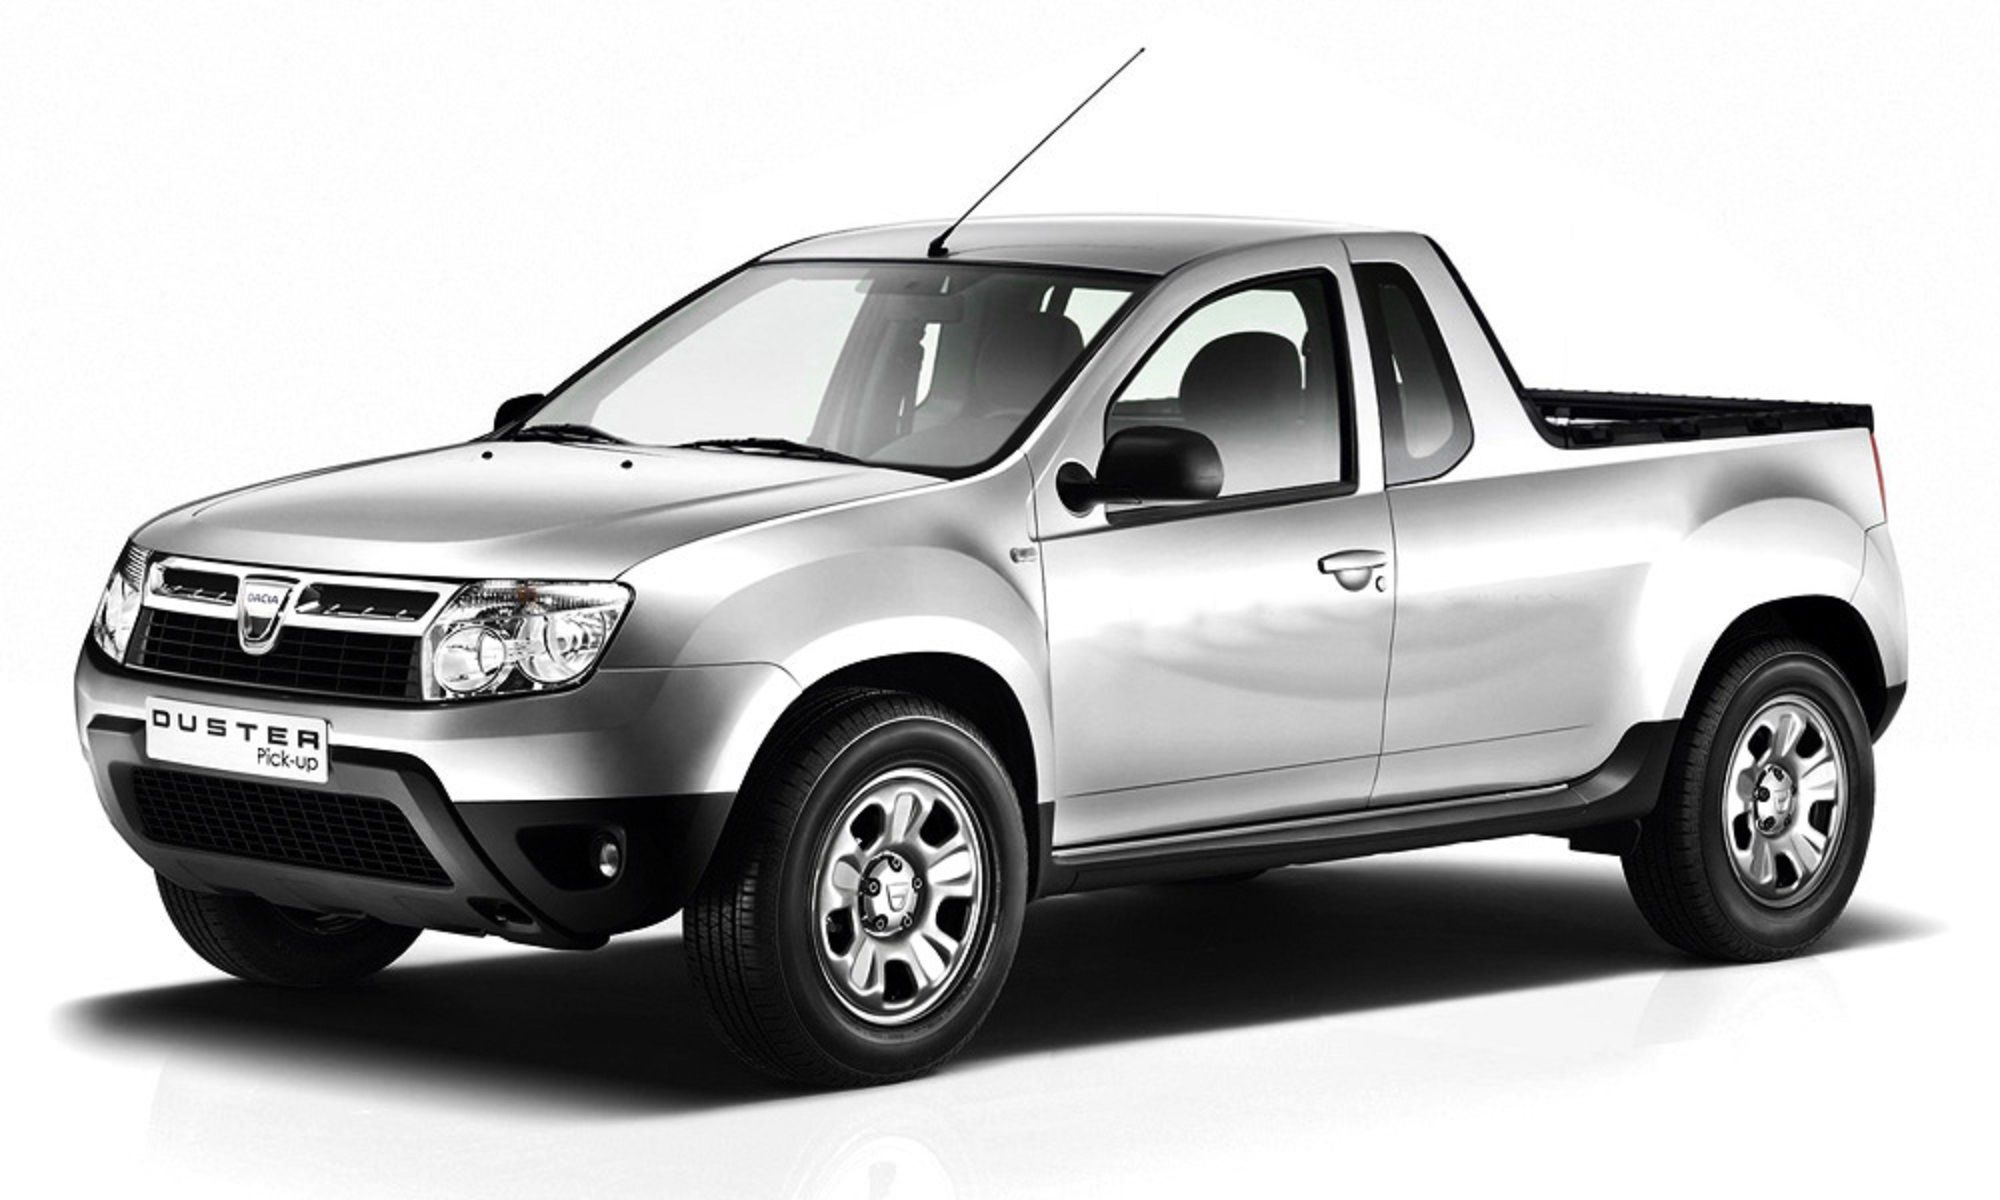 dacia duster pick up me pickup car jeep 4x4 exotic cars. Black Bedroom Furniture Sets. Home Design Ideas